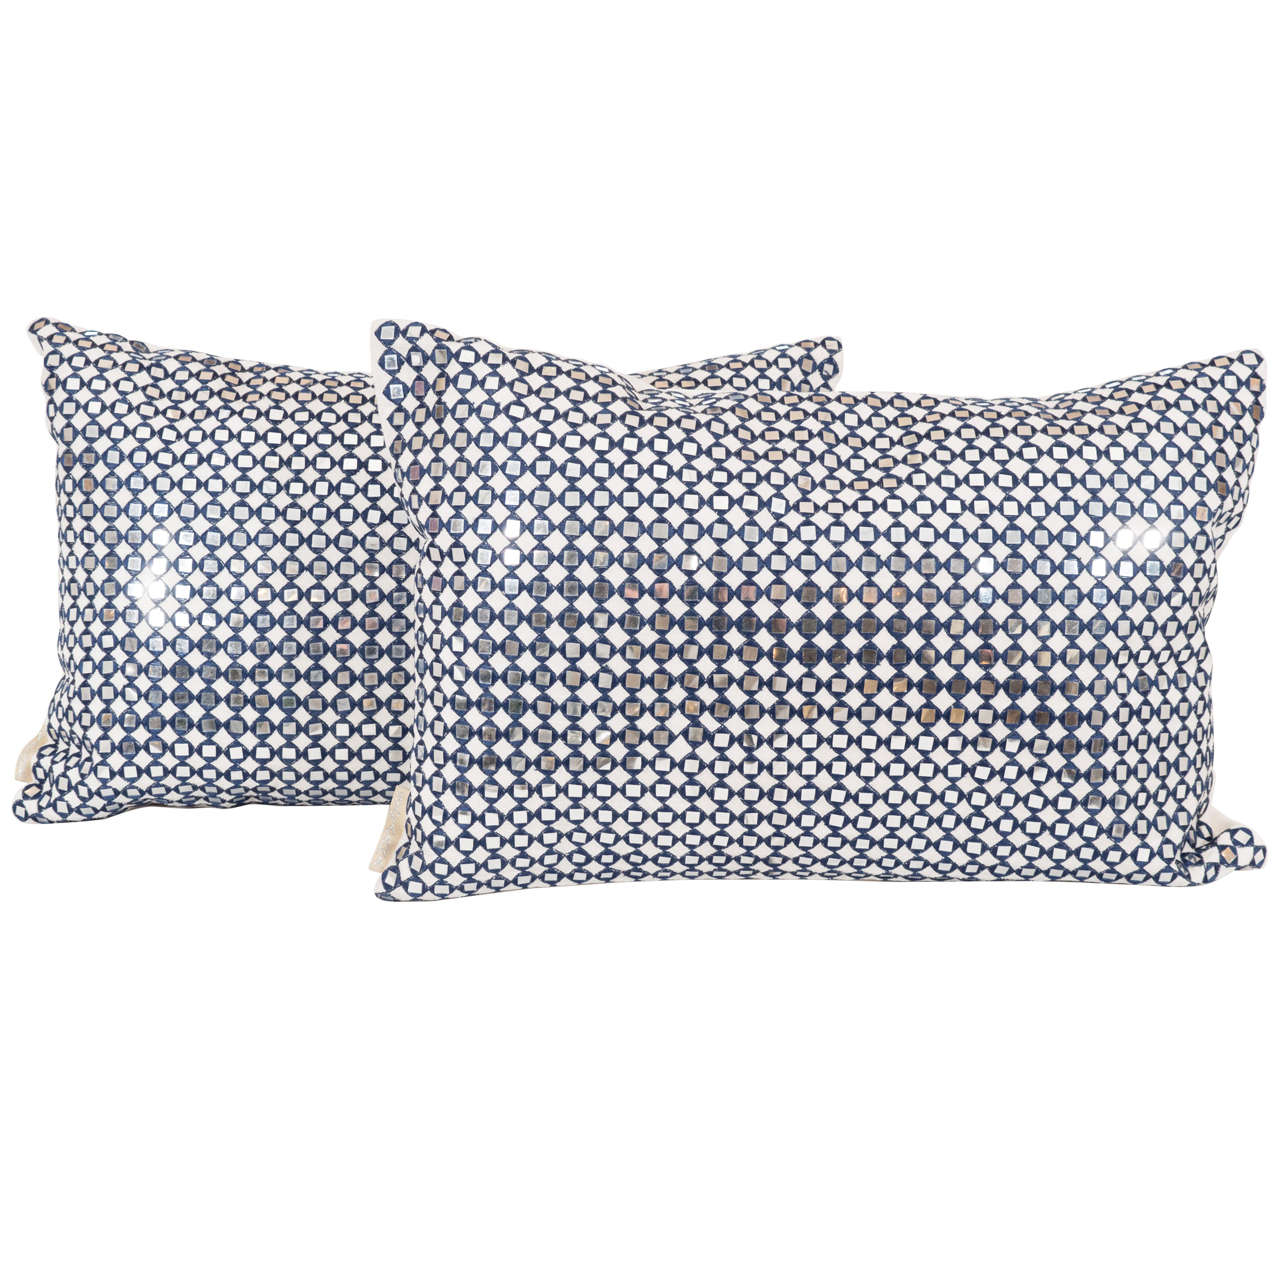 Pair of Sparkly Pillows For Sale